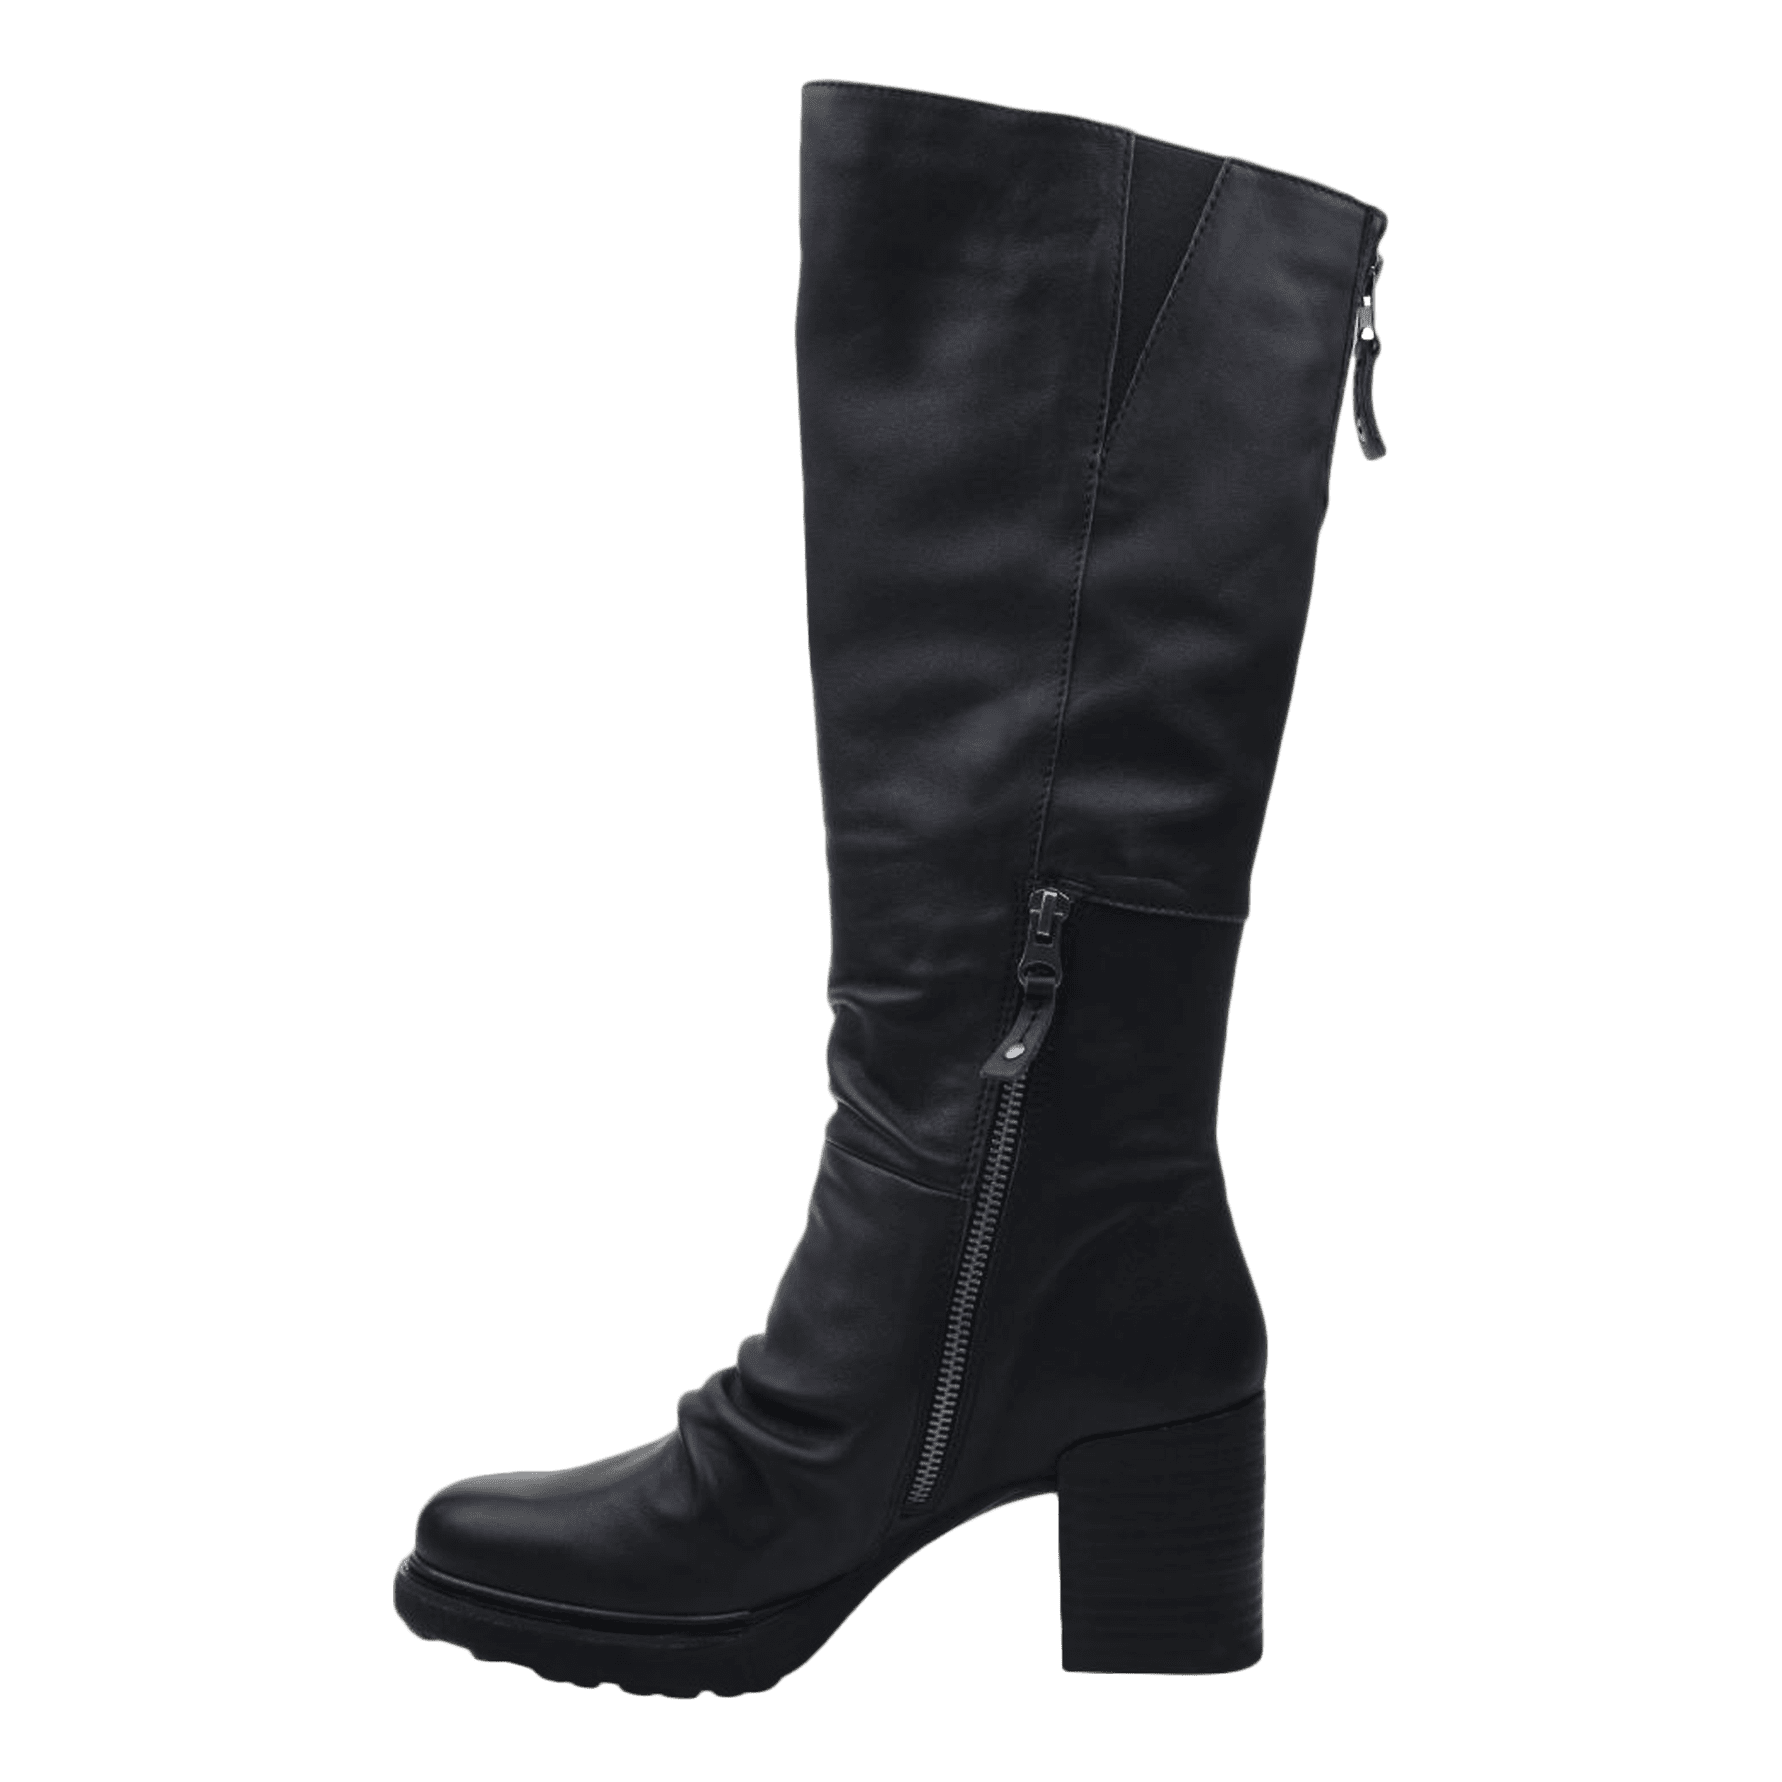 fd01d17c8fd9 Gambol in Black Knee High Boots | Women's Shoes by OTBT